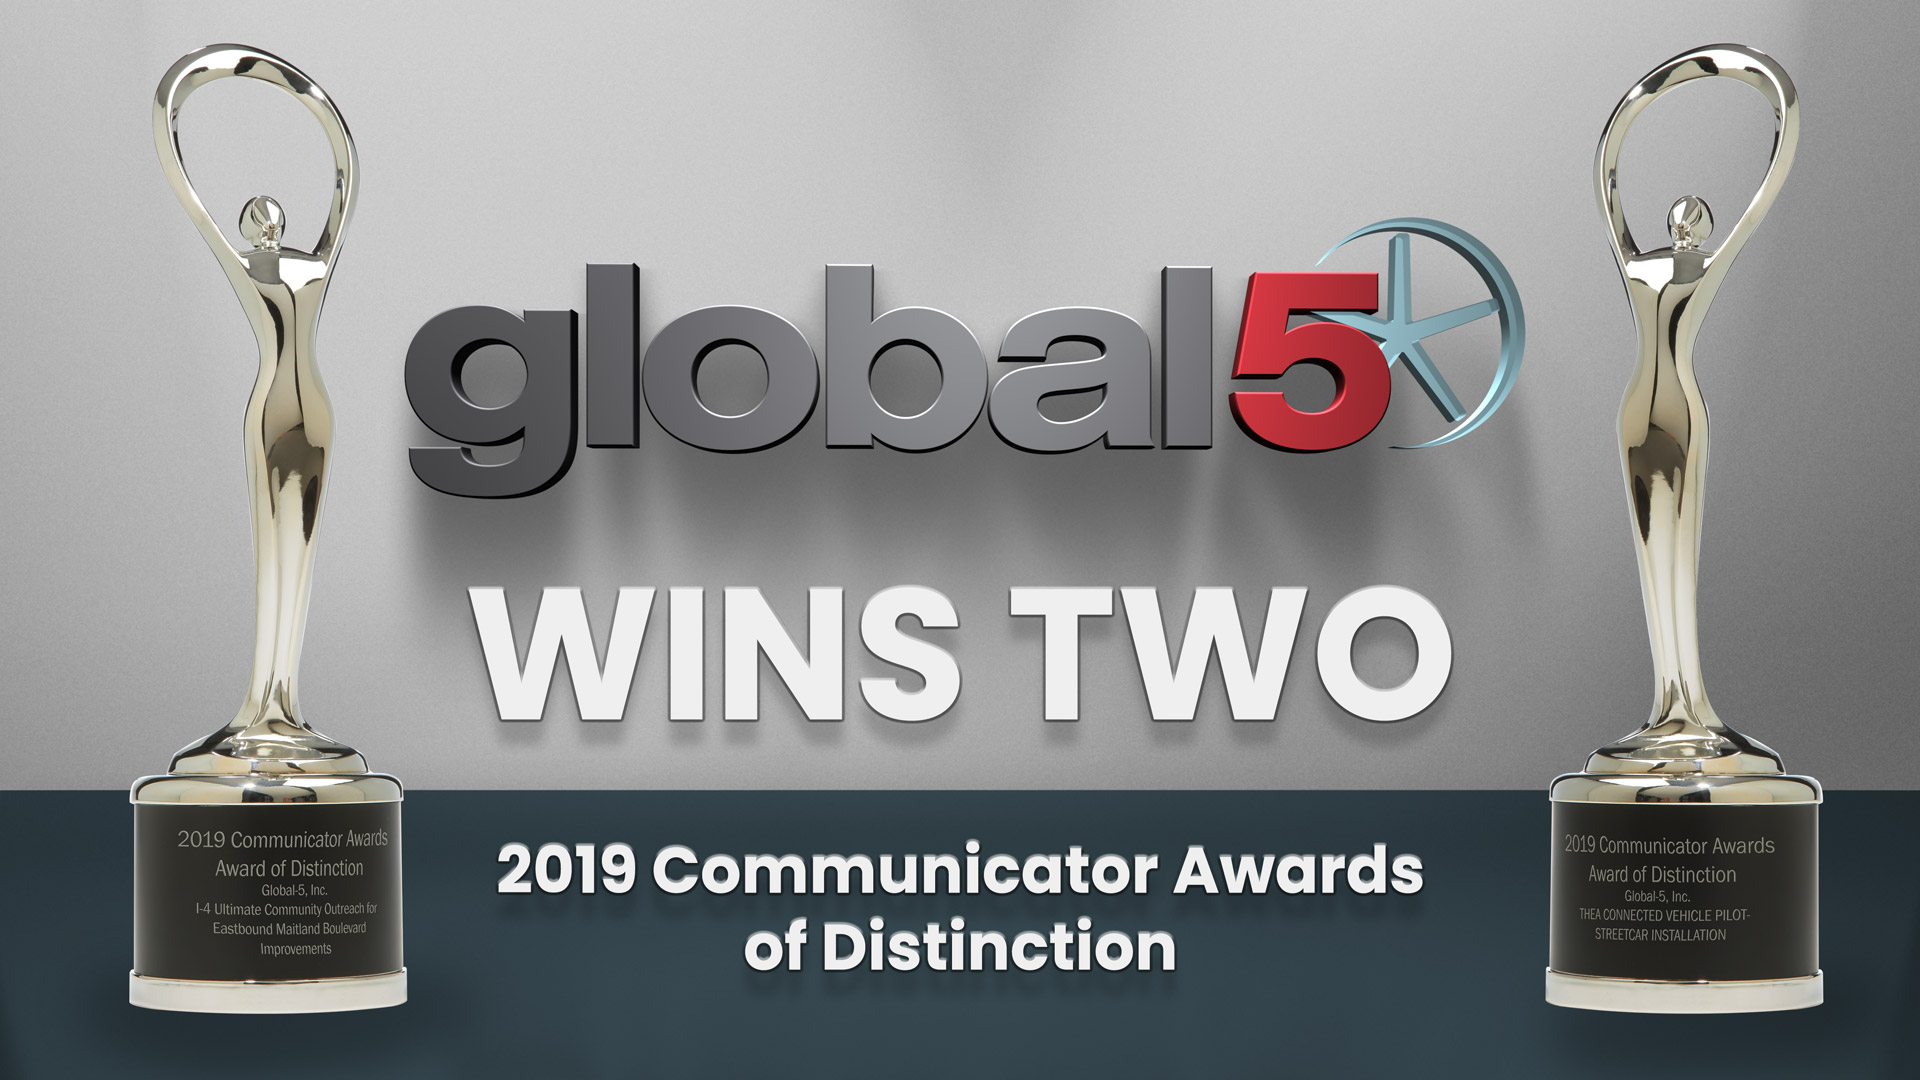 Global-5 Wins Two 2019 Communicator Awards of Distinction